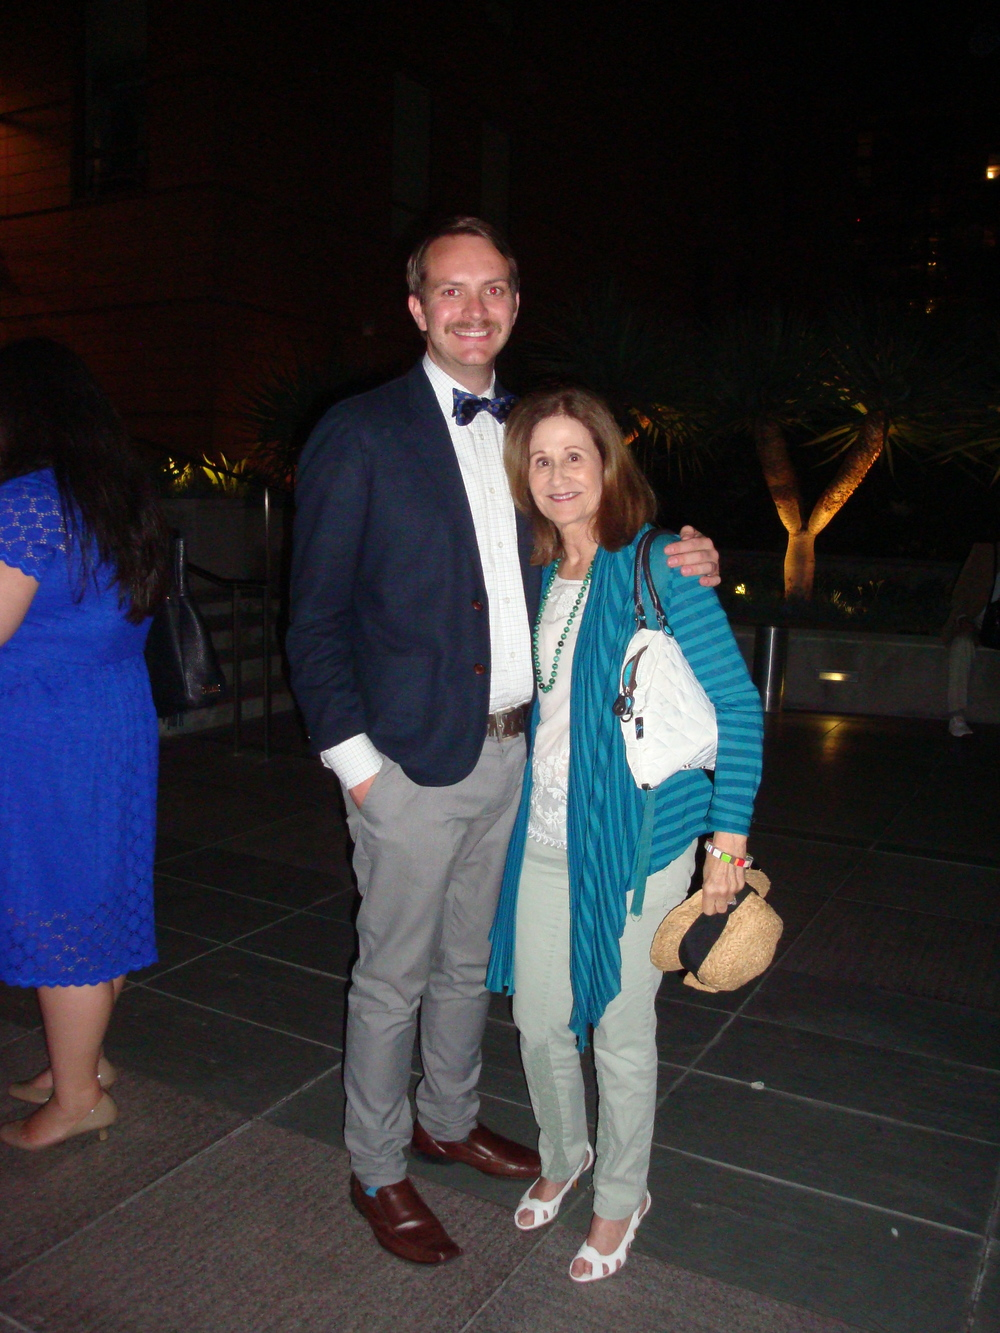 Derek Purdy and Doris Koplik Directors of Media Relations Long Beach Opera